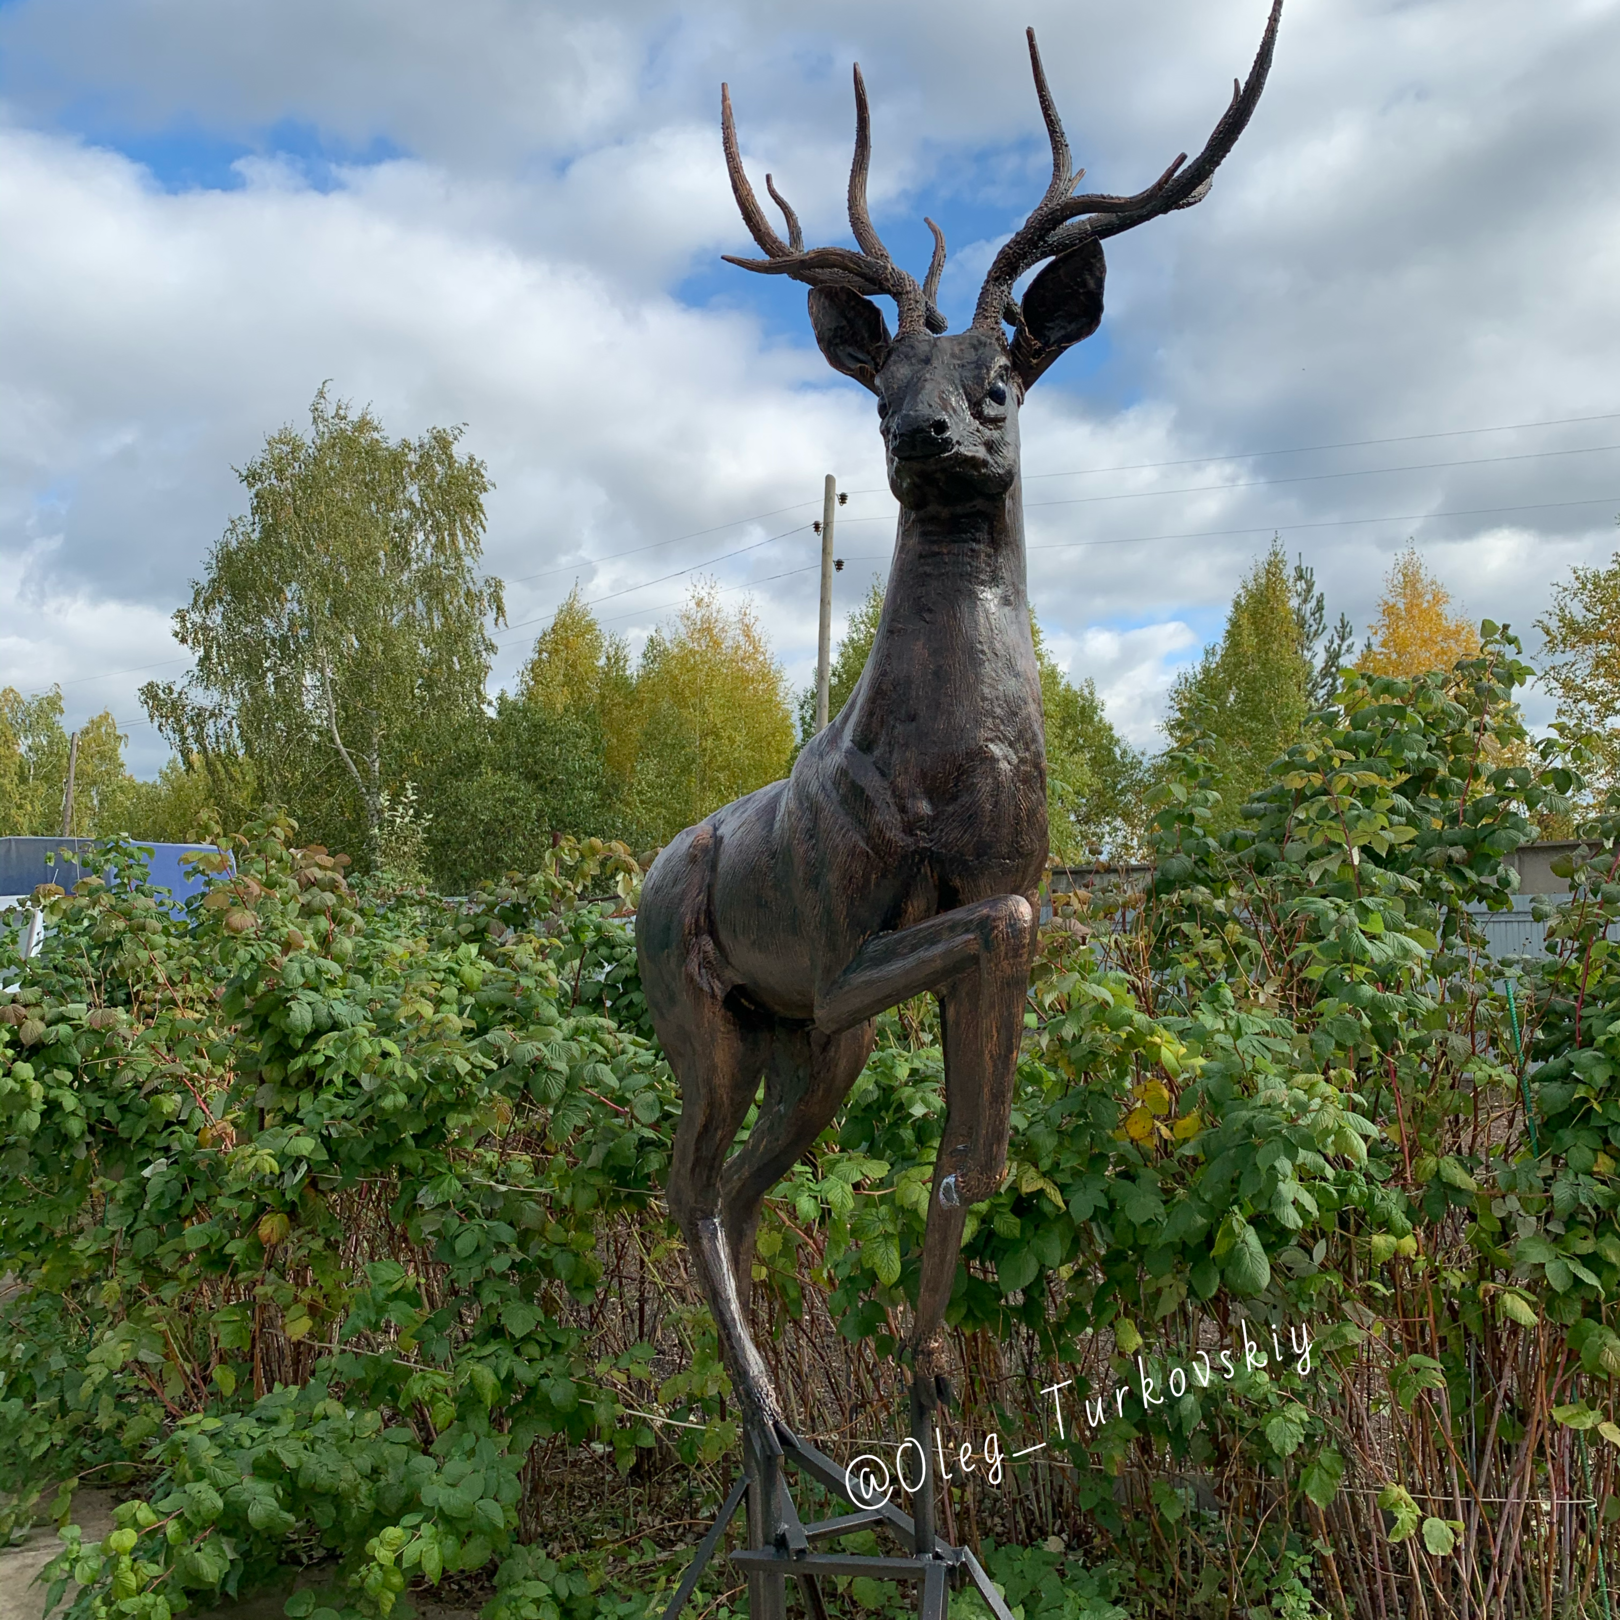 Deer sculpture. From a tale by Bazhov